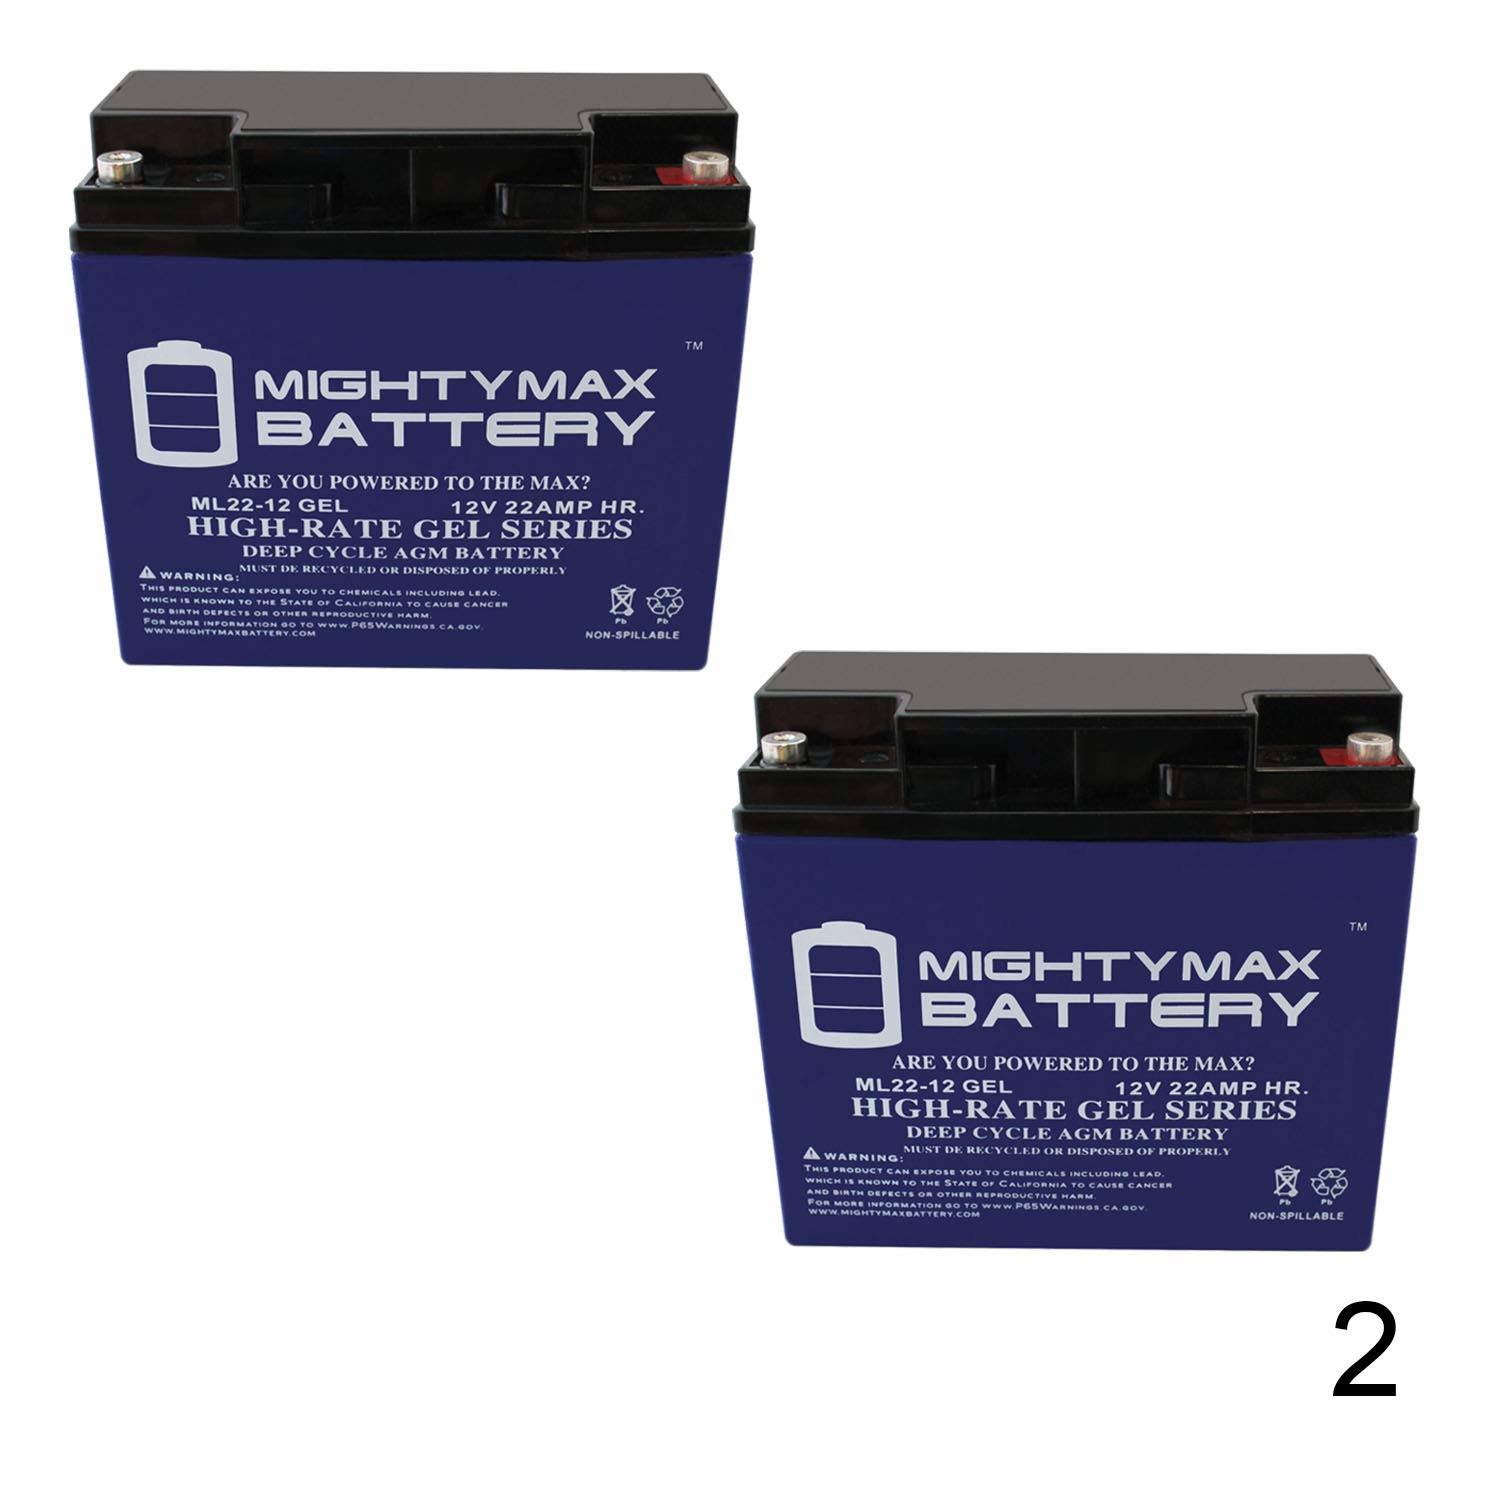 Mighty Max Battery 12V 22AH Gel Battery Replaces 51814 6fm17 6-dzm-20 6-fm-18-2 Pack Brand Product